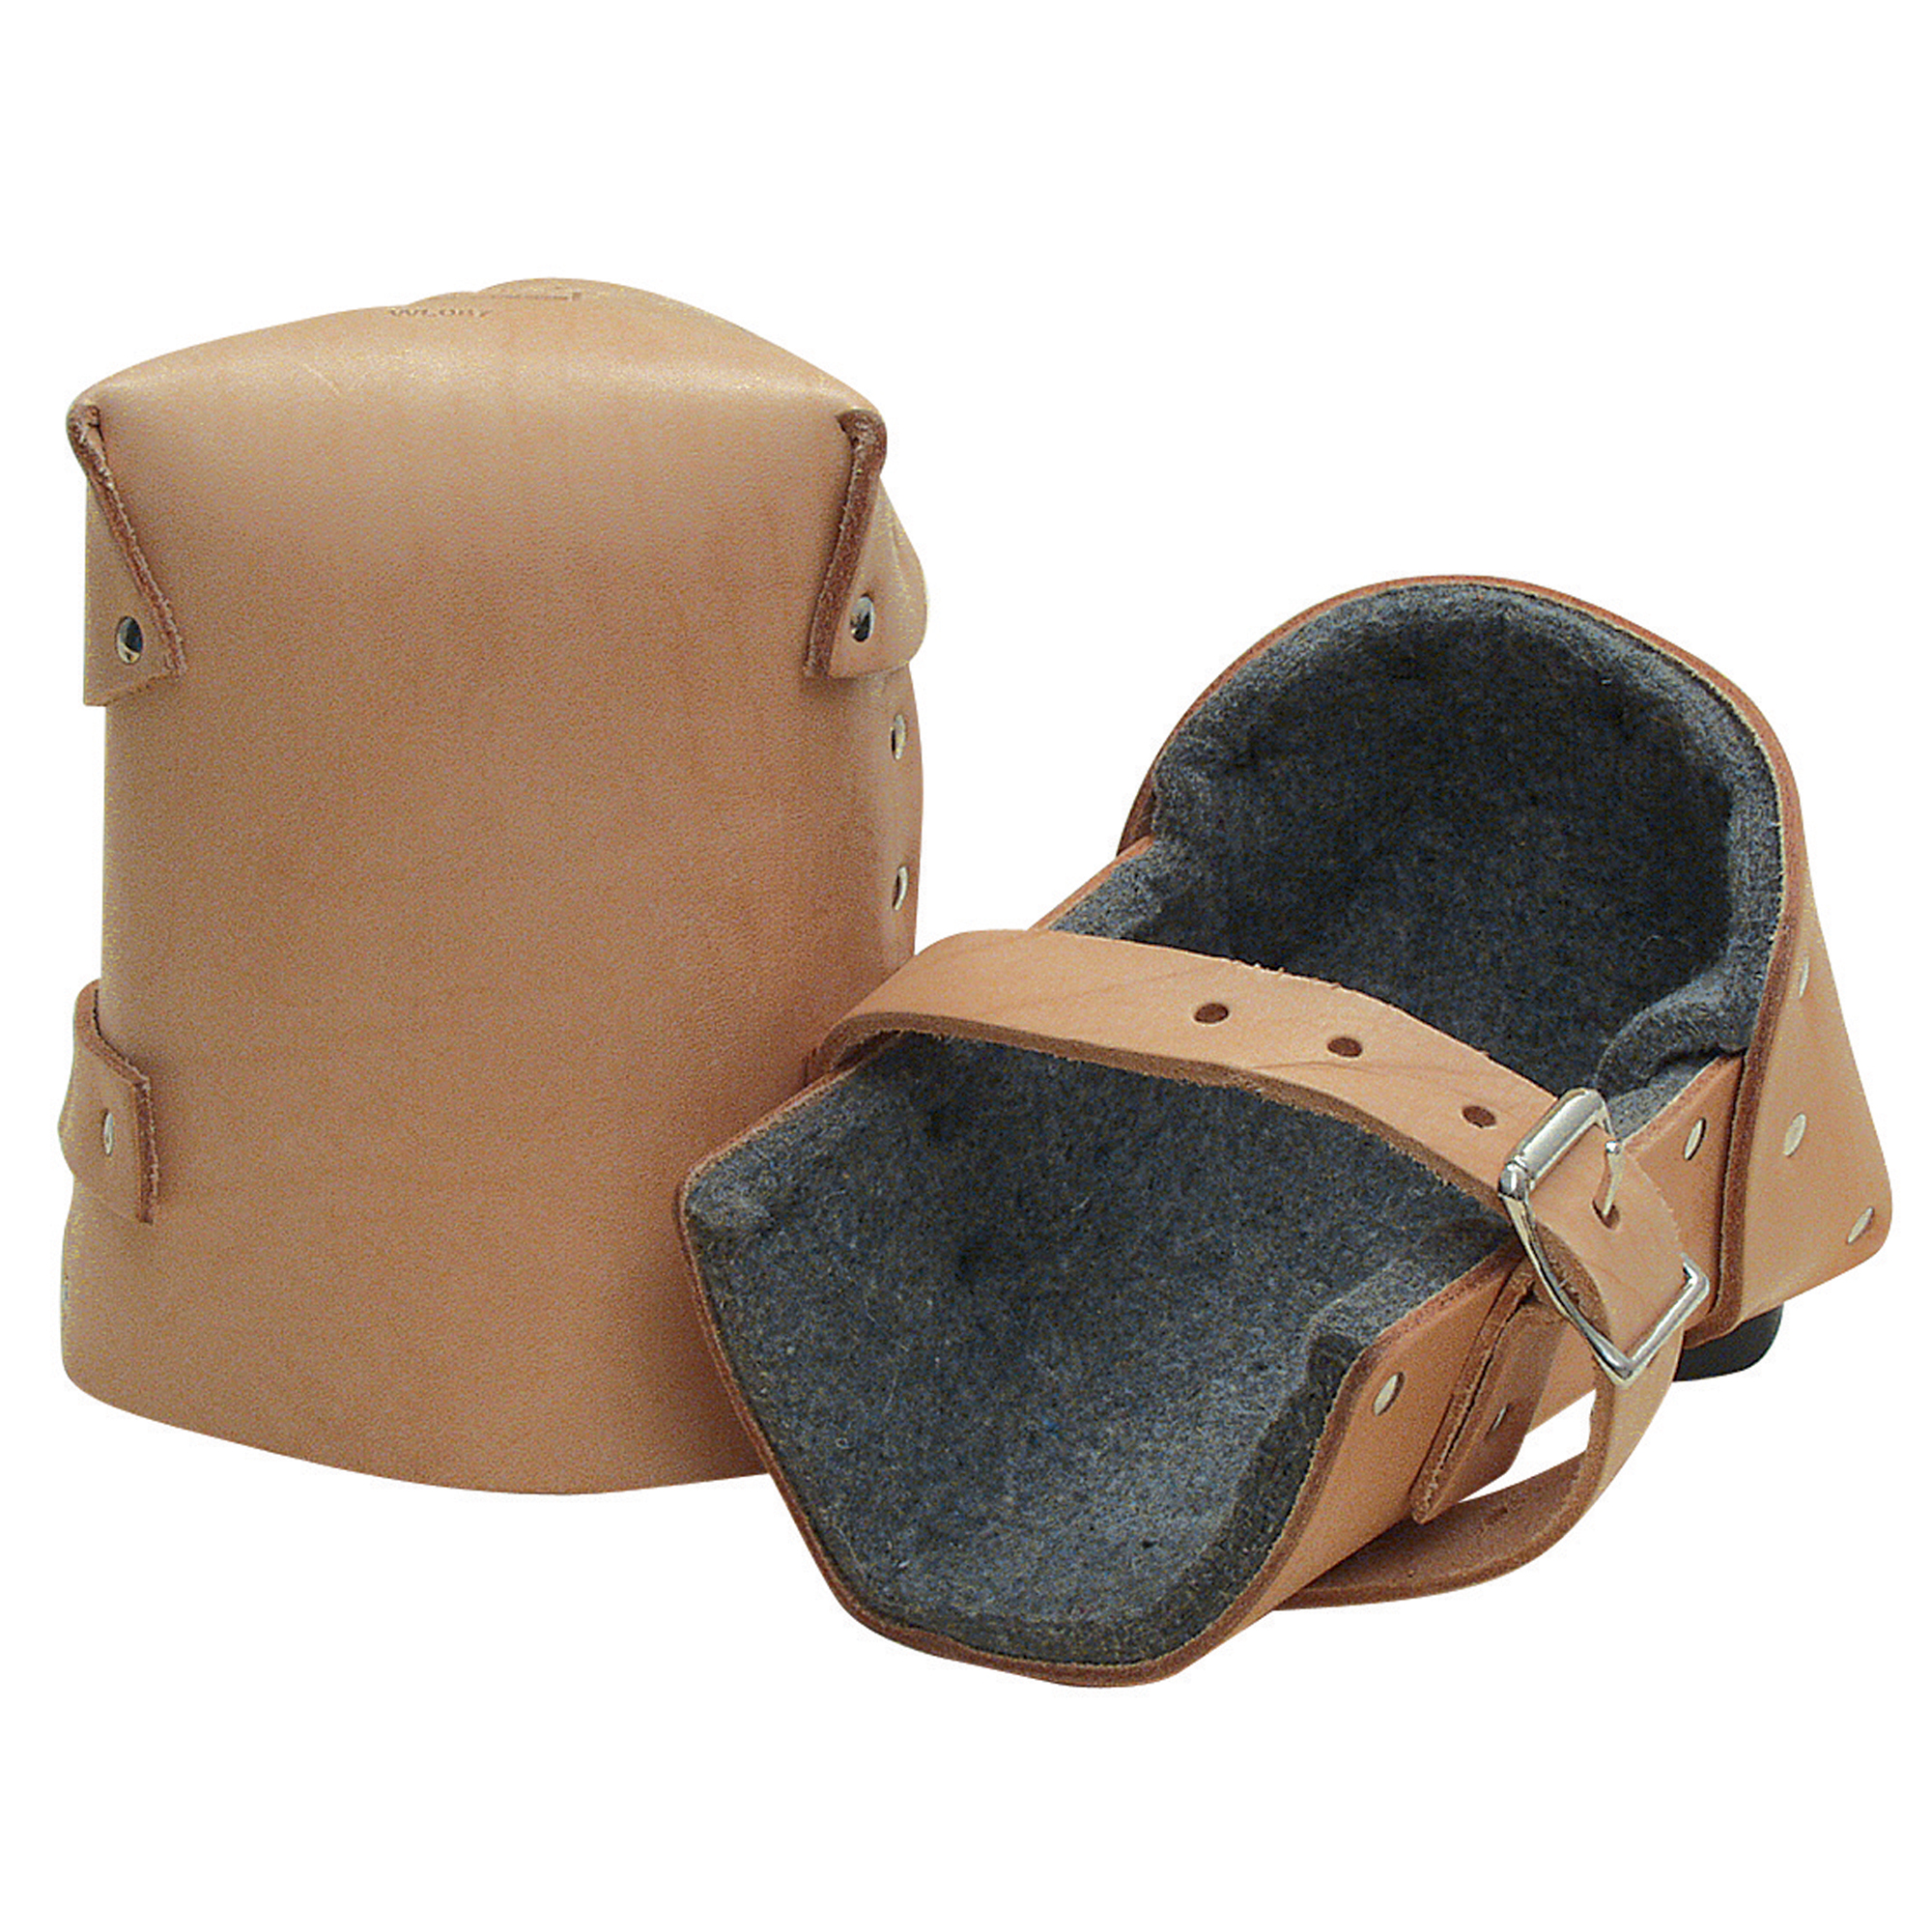 1inch Thick Felt Leather Knee Pads (pair) - Wl088 - Safety & Security Gloves & Hand Protection Leather Palm Leather Palm Gloves WL088